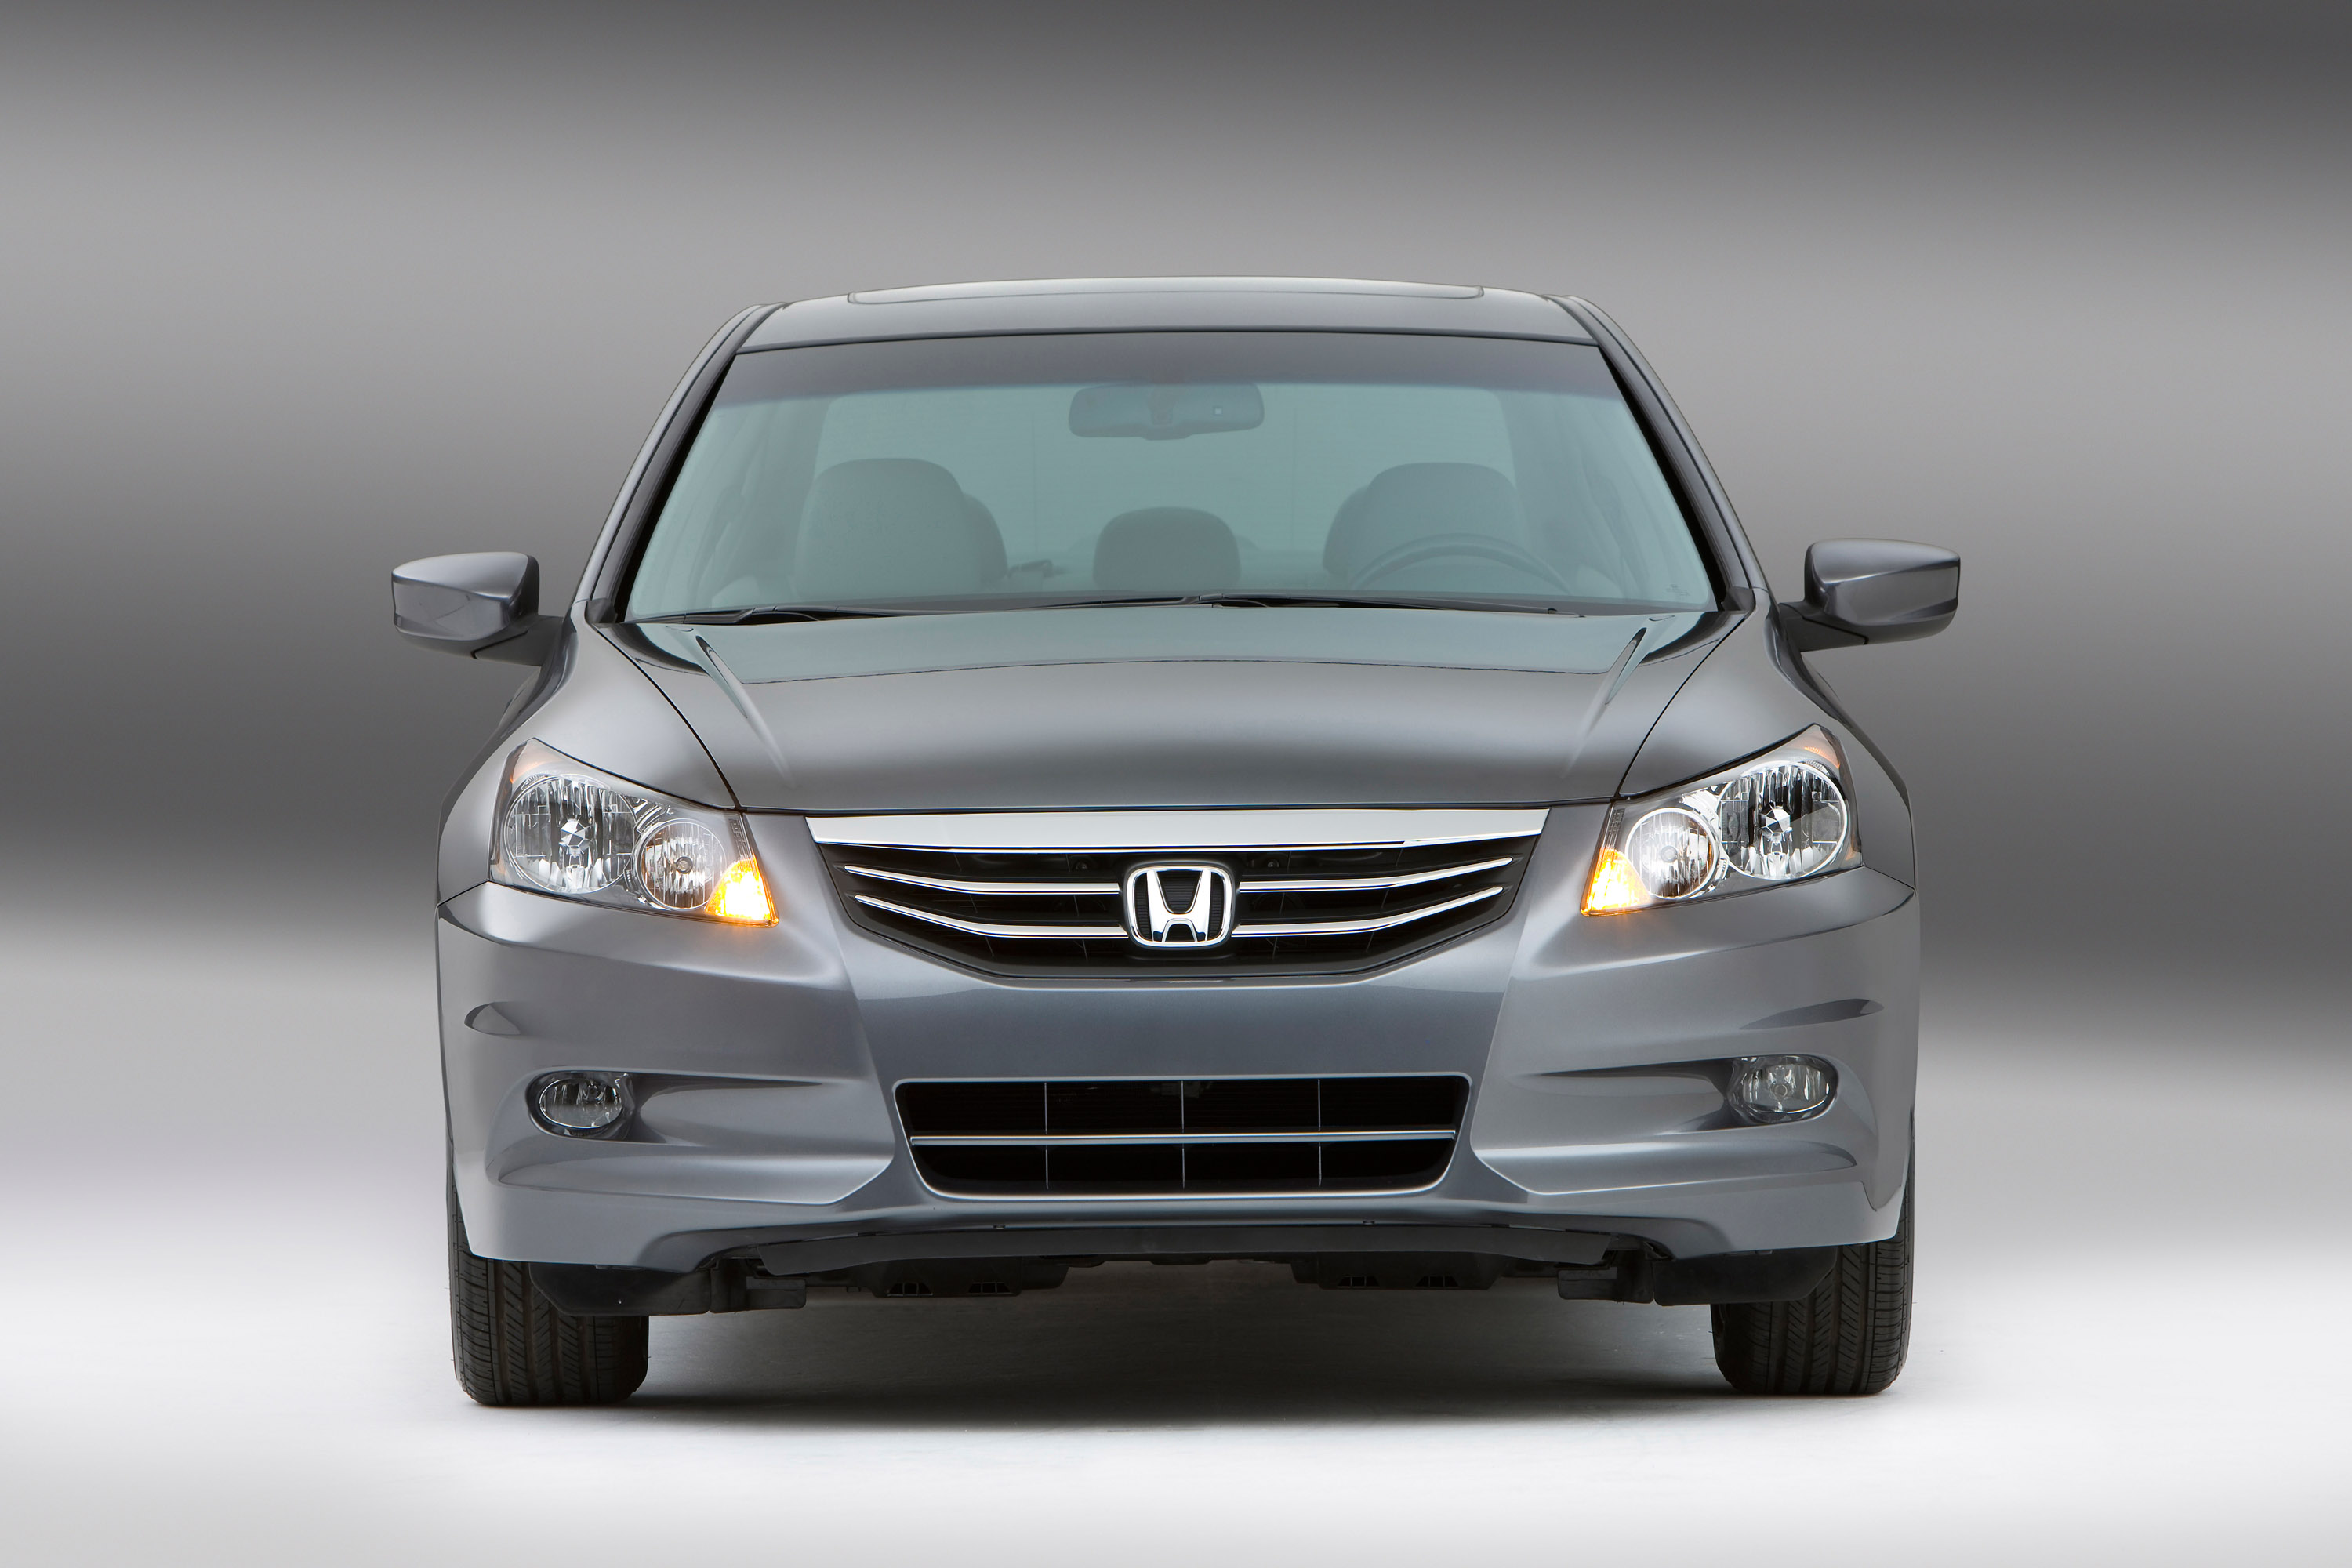 2011 Honda Accord Ex L V6 Sedan Picture 39058